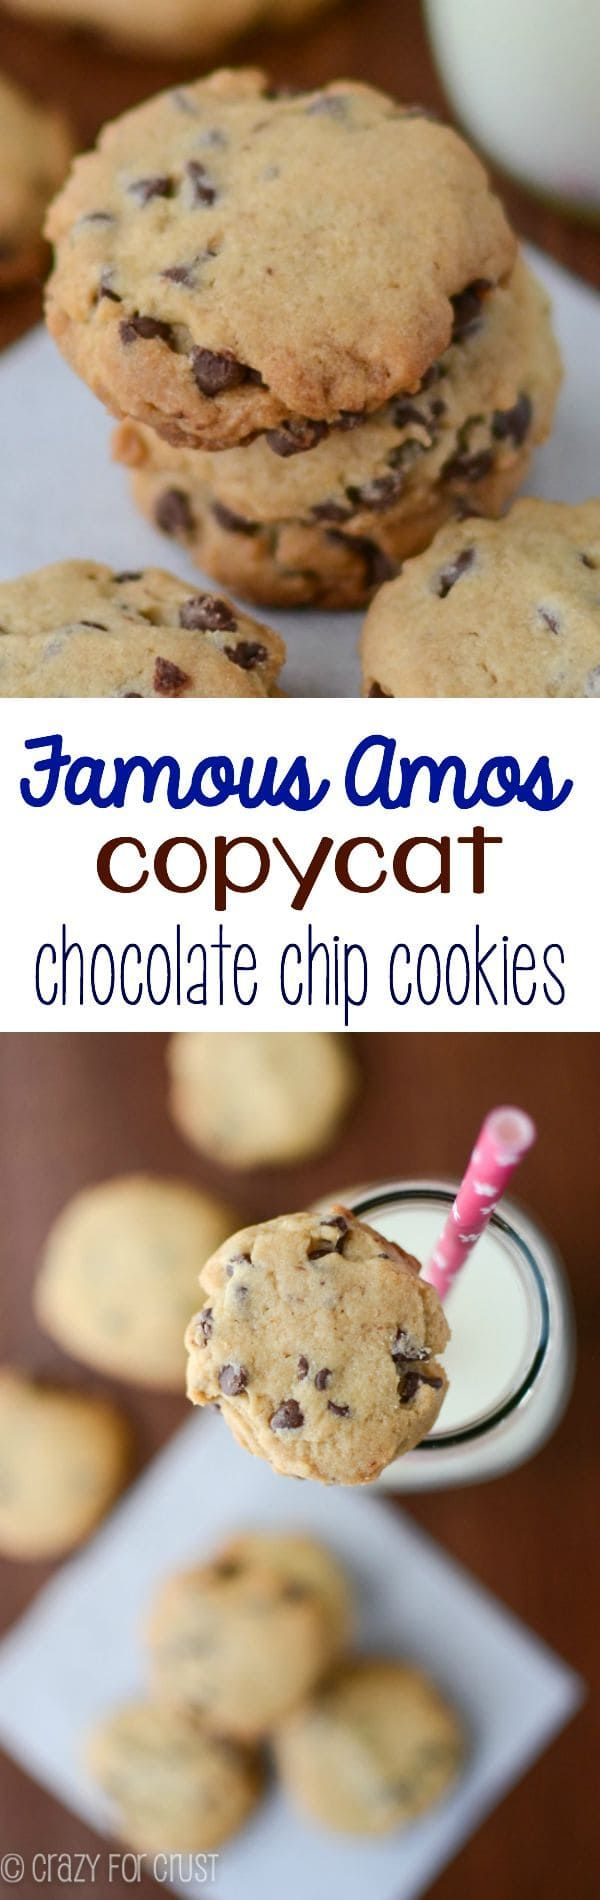 Famous Amos Copycat Chocolate Chip Cookies - these EASY cookies taste better than the original recipe!